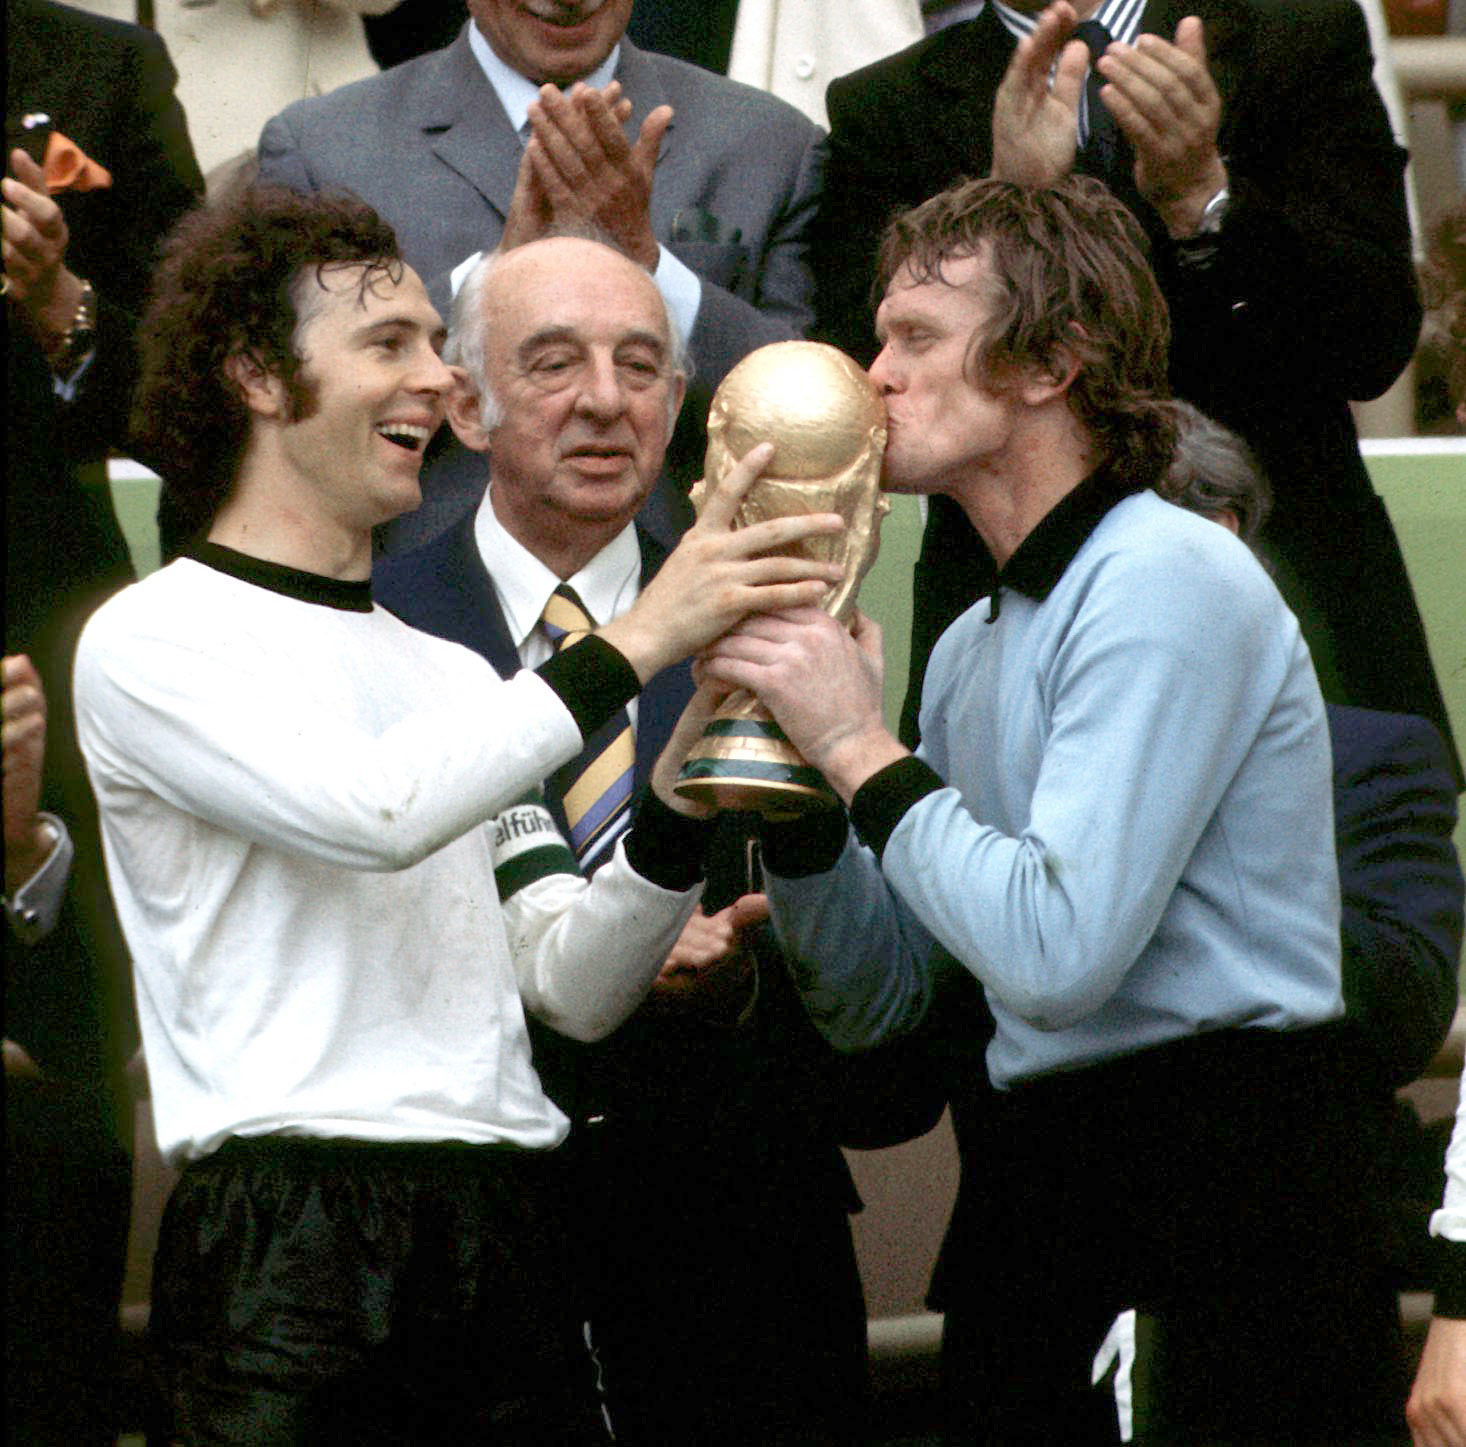 Laughing team captain Franz Beckenbauer is holding the conquered World Cup trophy and goalkeeper Sepp Maier is kissing the trophy. DFB president Hermann Goessmann is watching. Sep Majer i Franc Bekenbauer 1974 FIFA World Cup final 2:1 against Netherlands in Munich's Olympic stadium in Germany